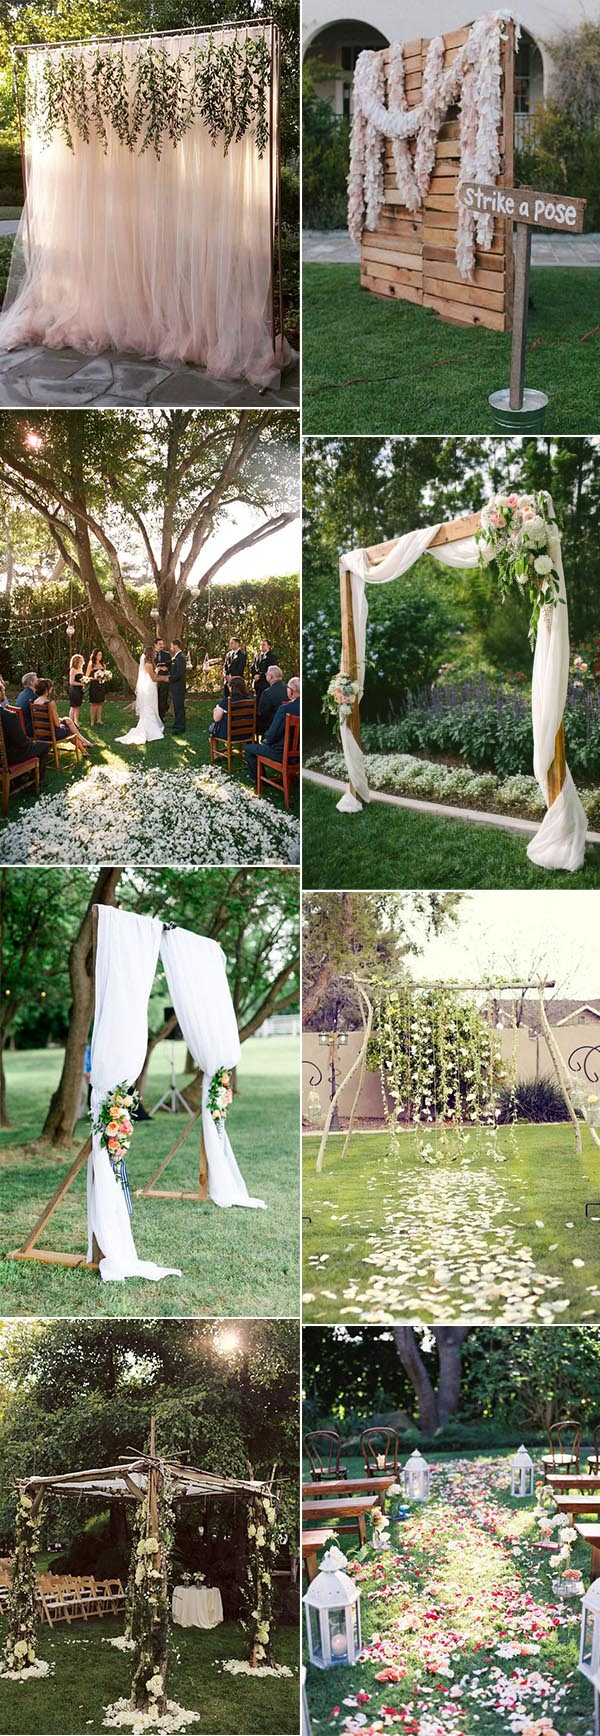 Small Wedding Ideas 30 Sweet Ideas For Intimate Backyard Outdoor Weddings